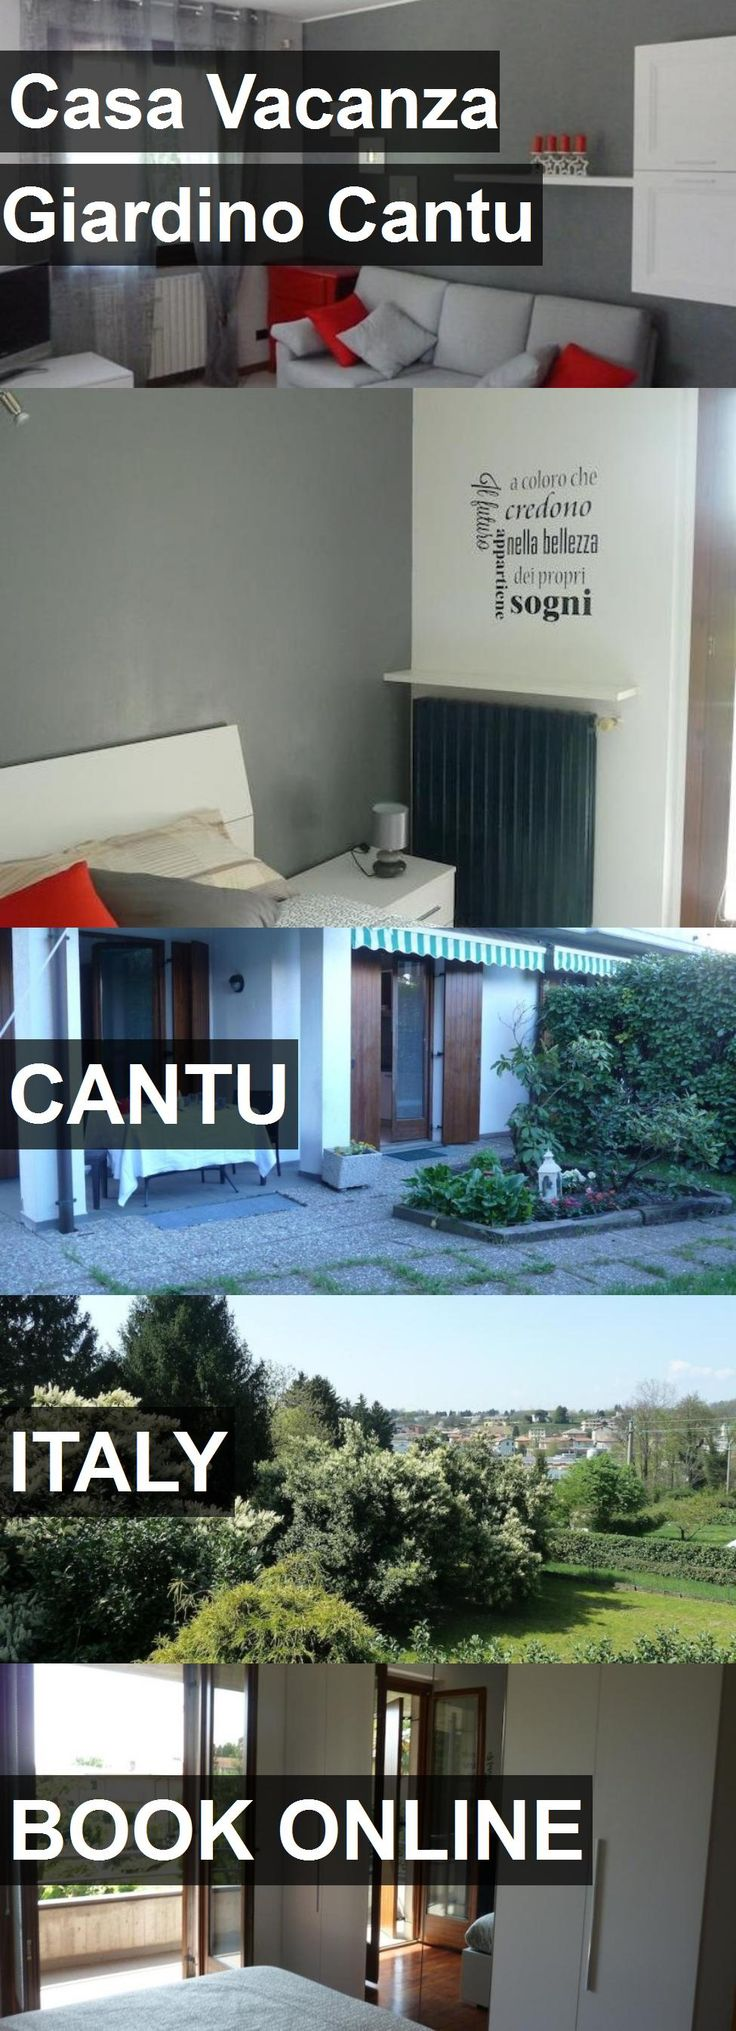 Hotel Casa Vacanza Giardino Cantu in Cantu, Italy. For more information, photos, reviews and best prices please follow the link. #Italy #Cantu #travel #vacation #hotel